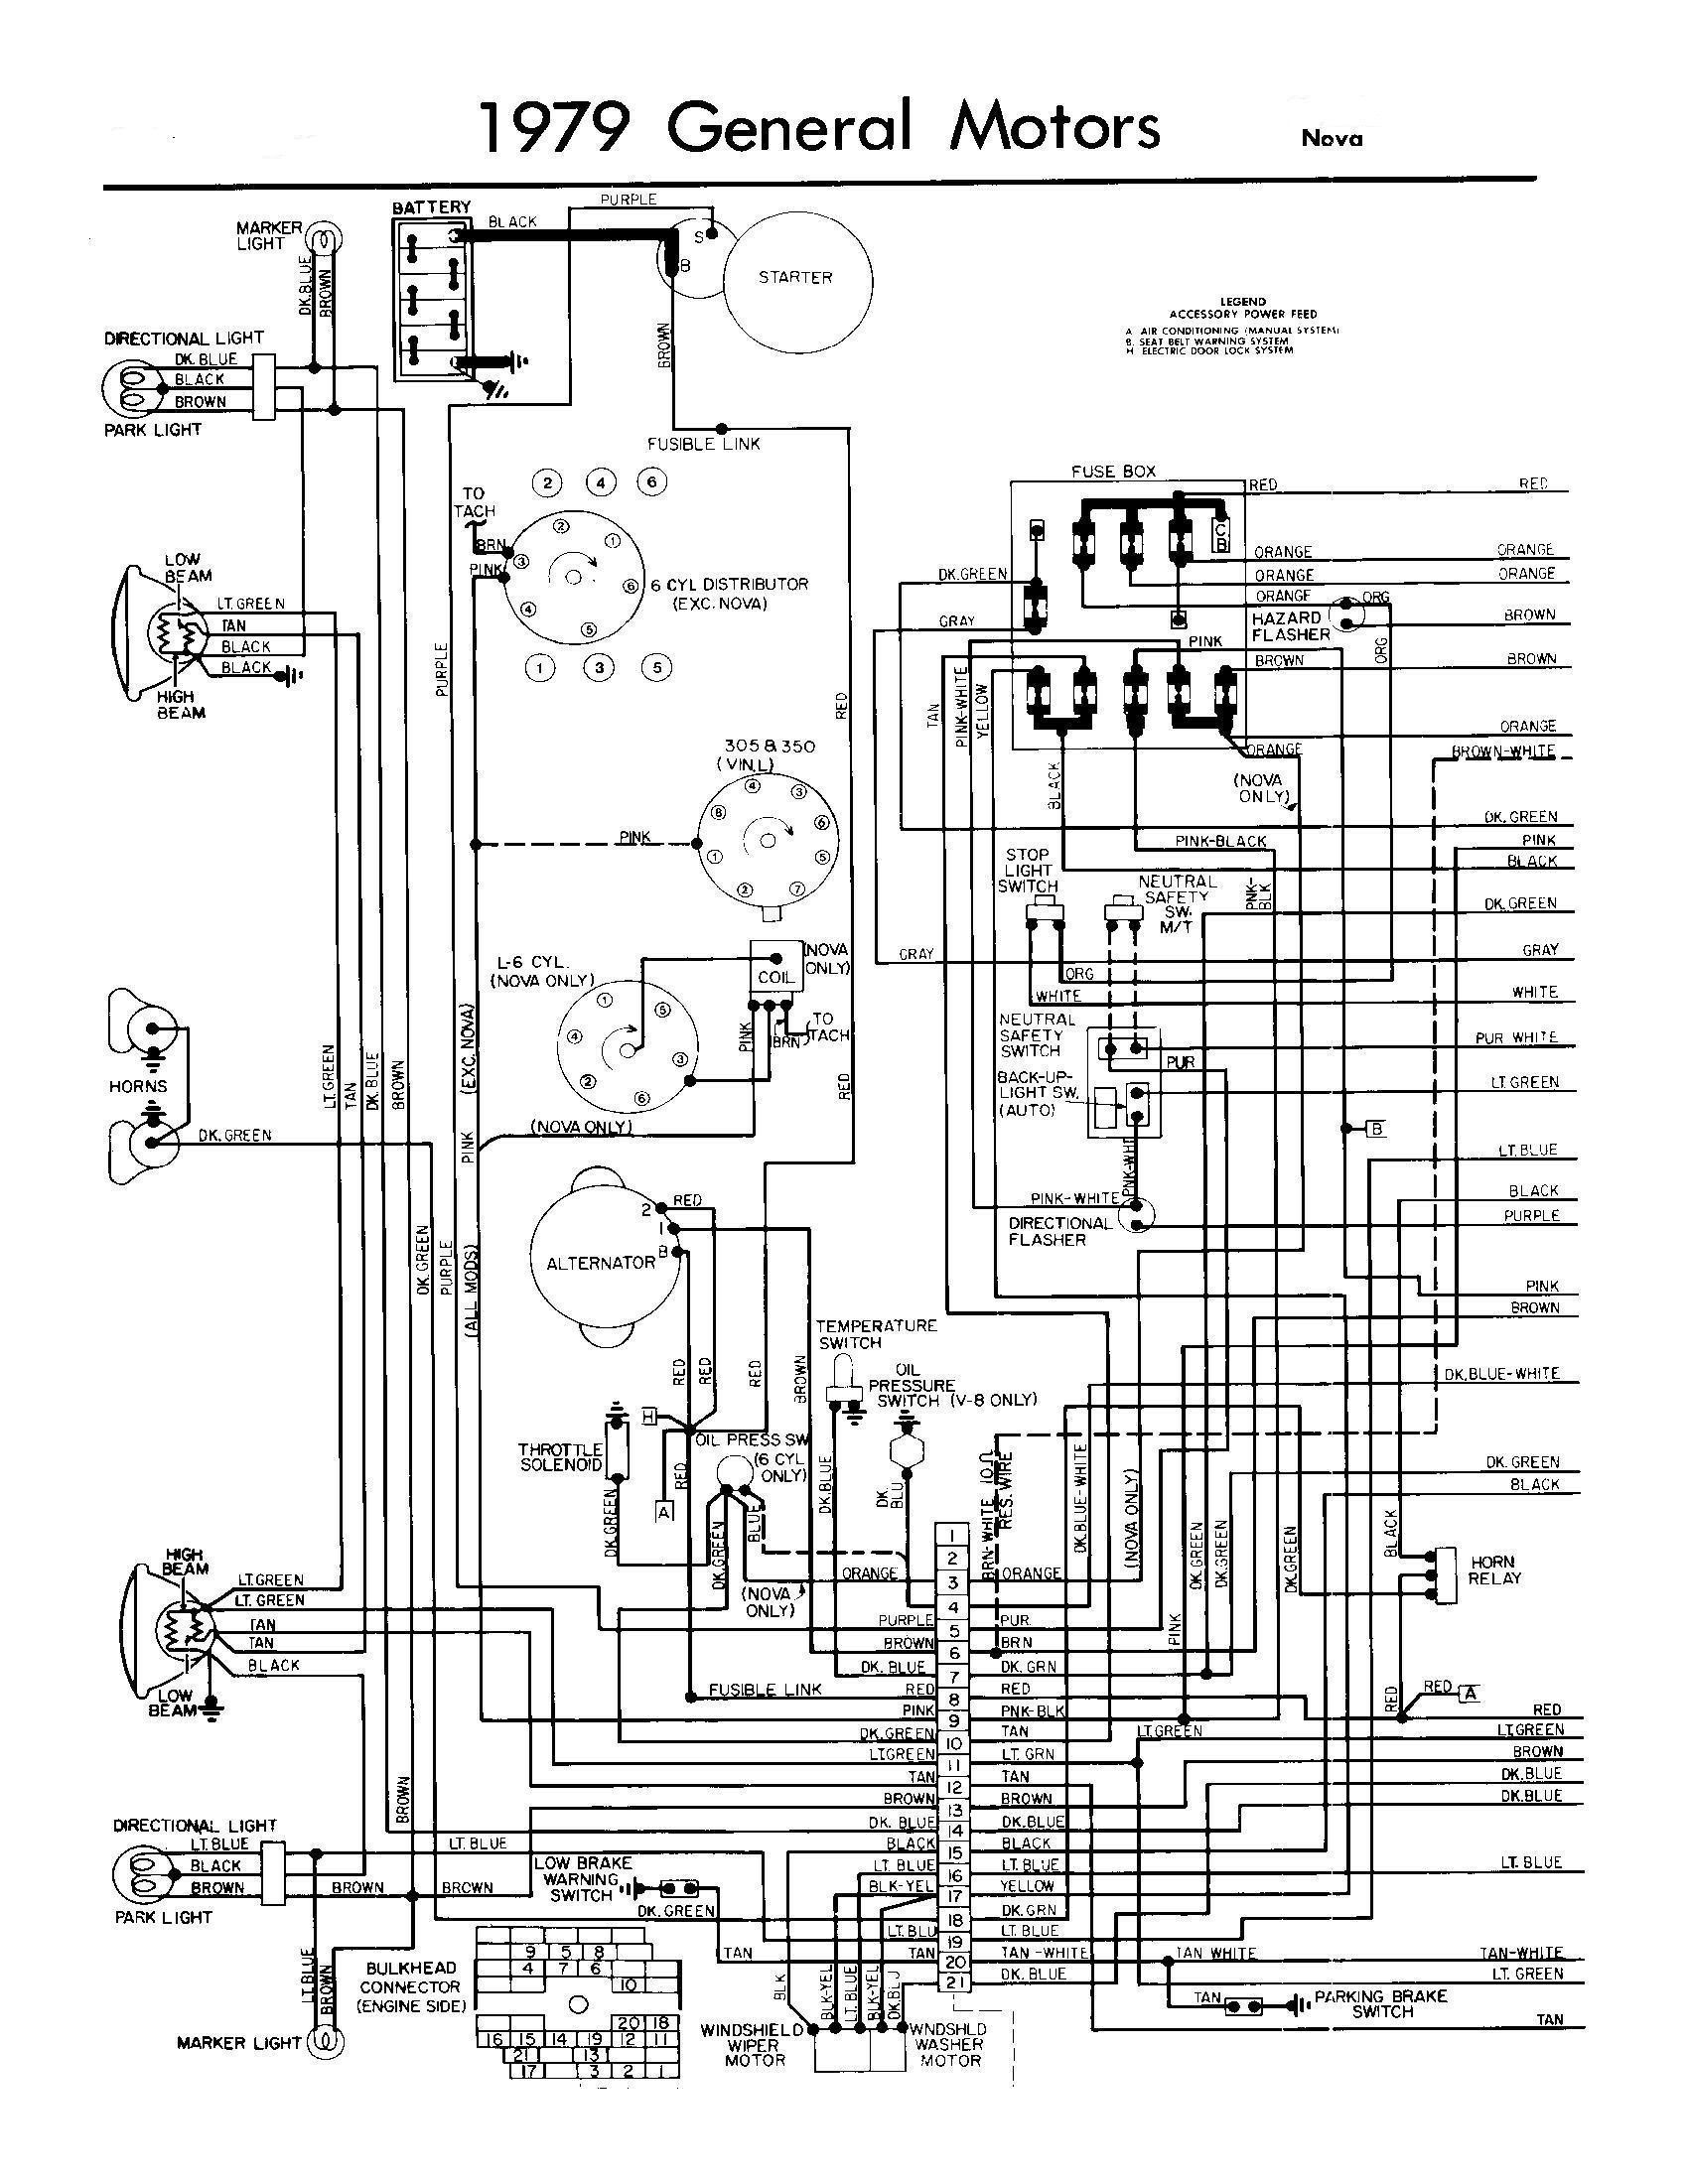 1969 chevy horn relay wiring diagram